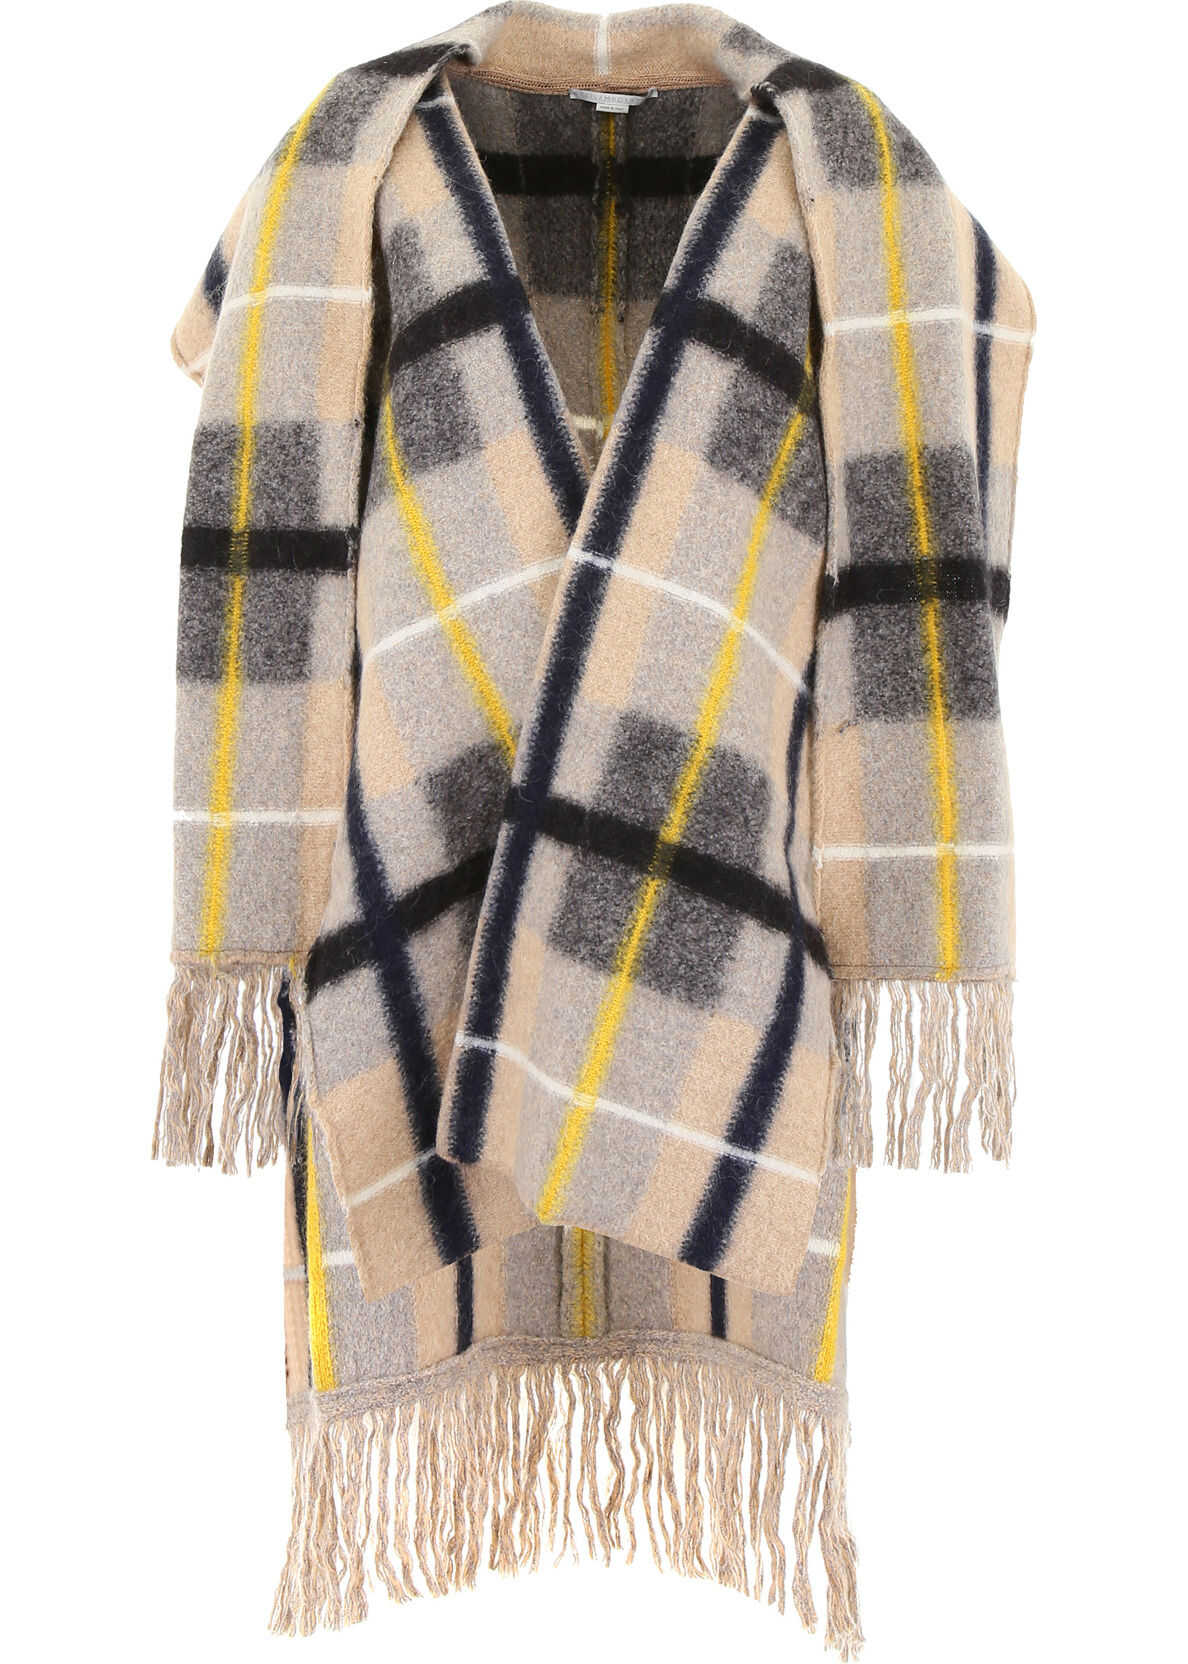 adidas by Stella McCartney Check Cape With Fringes CAMEL COLOURWAY